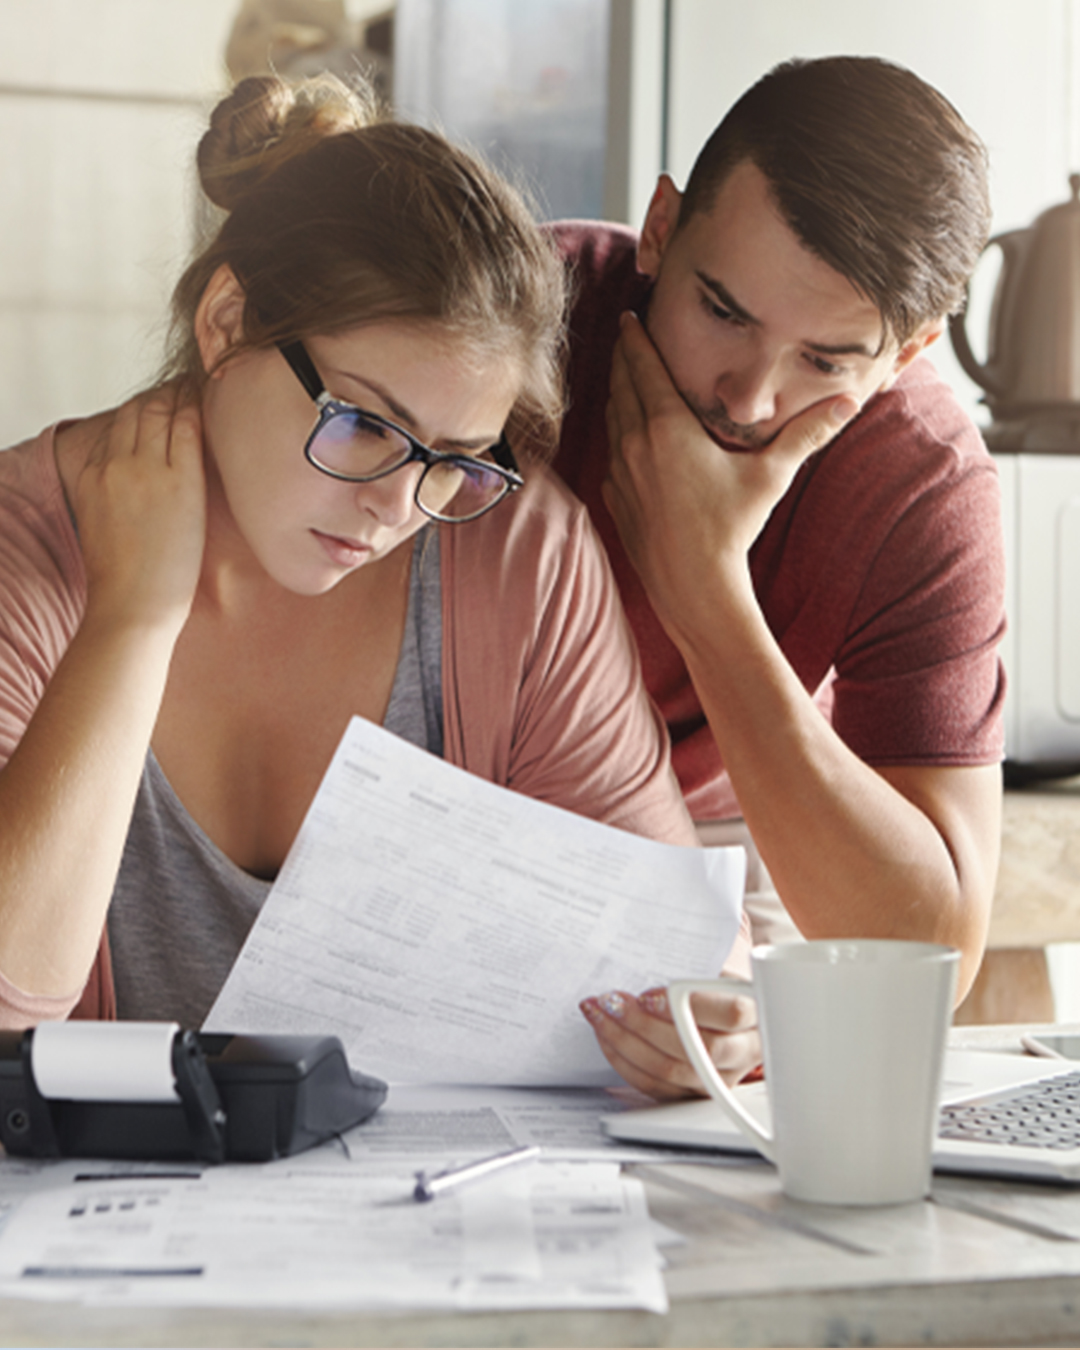 Two people look at paper with concern